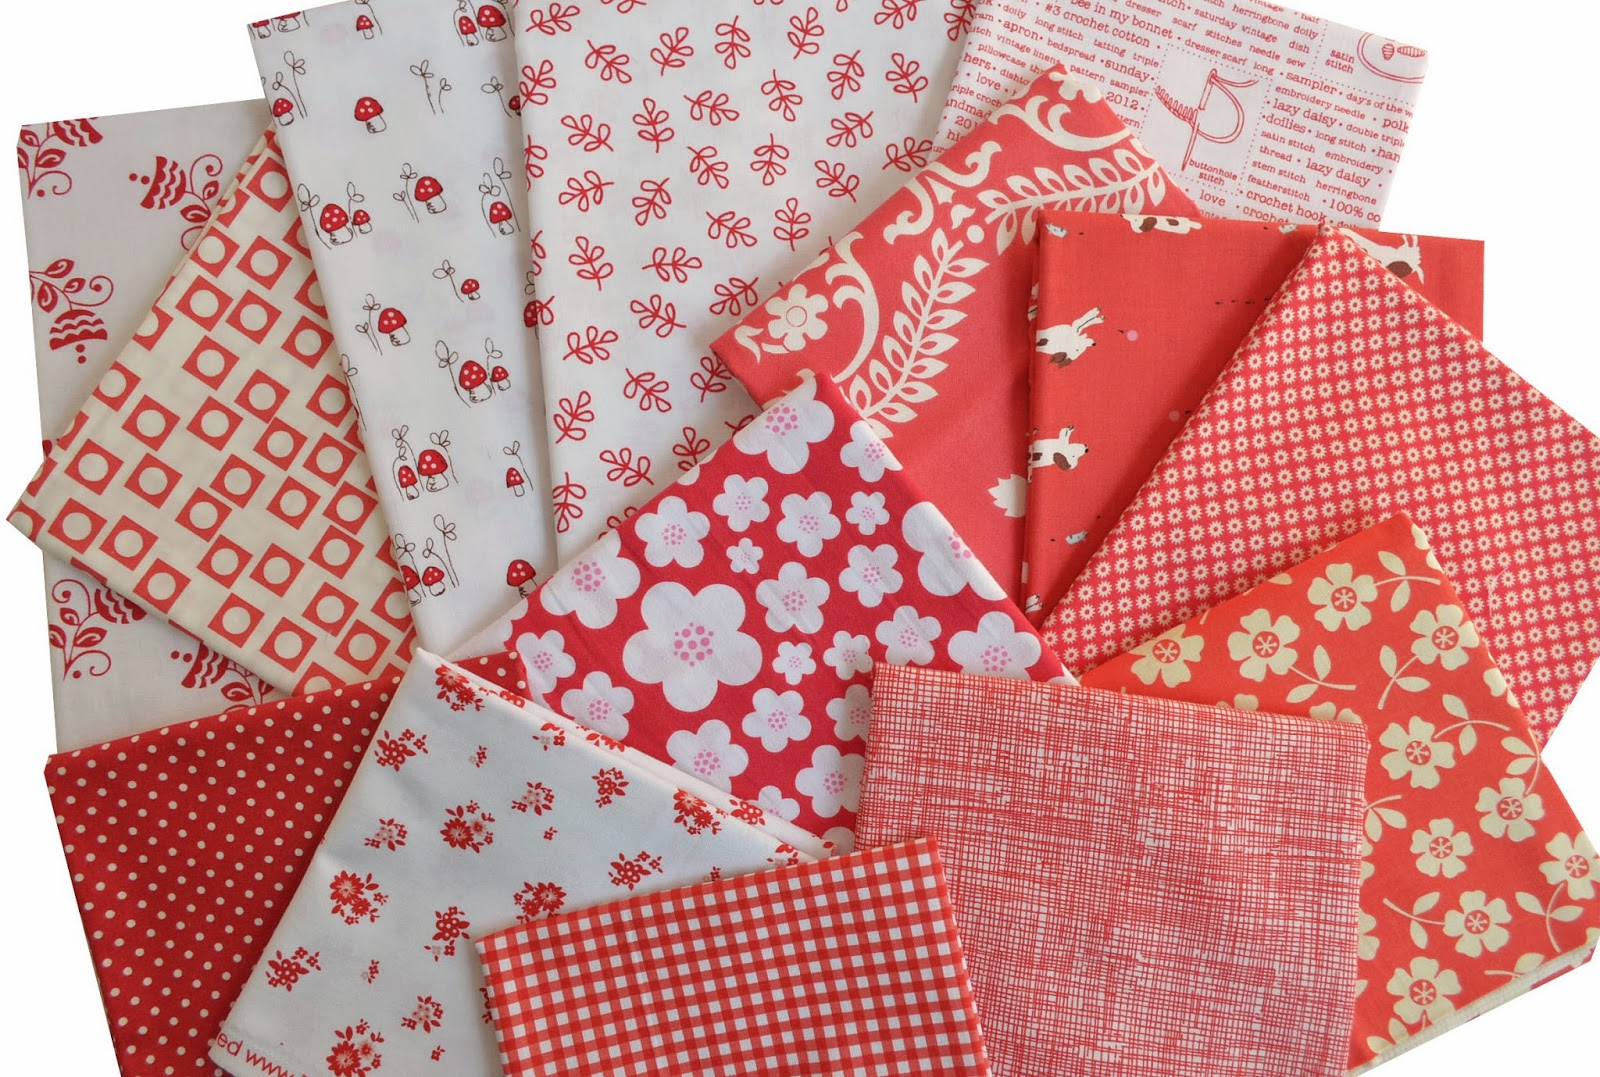 collage of red and white quilting cottons